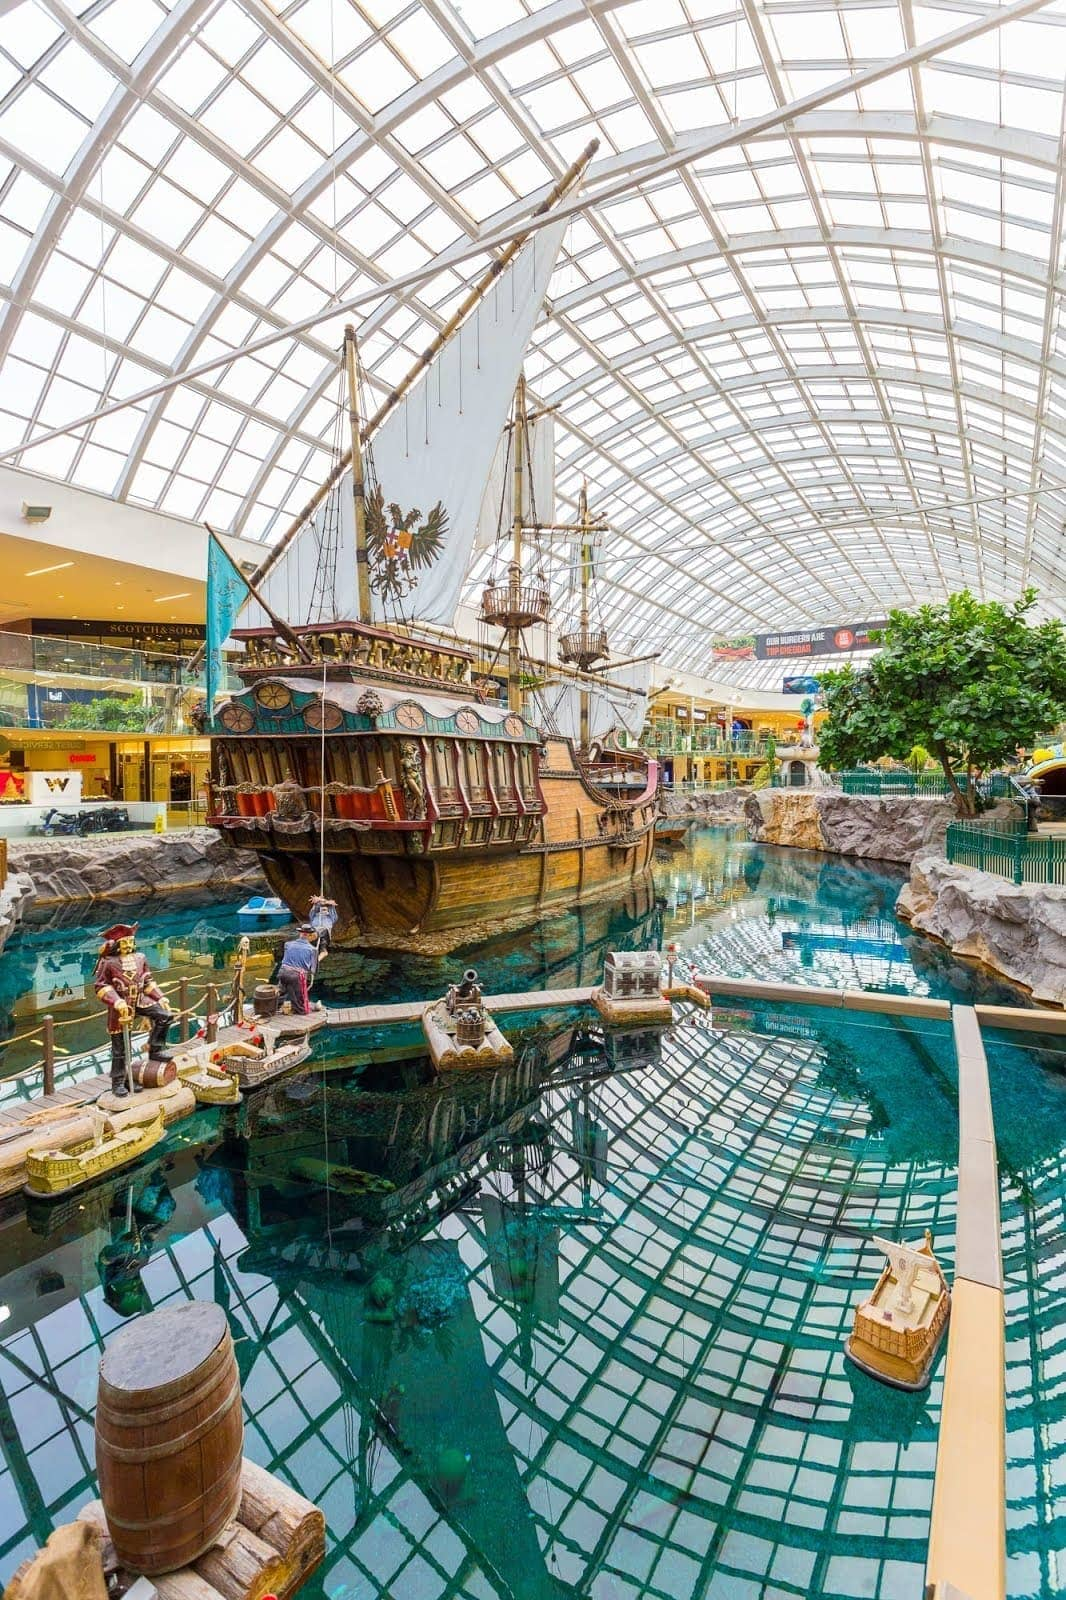 West Edmonton Mall by Laurence Norah